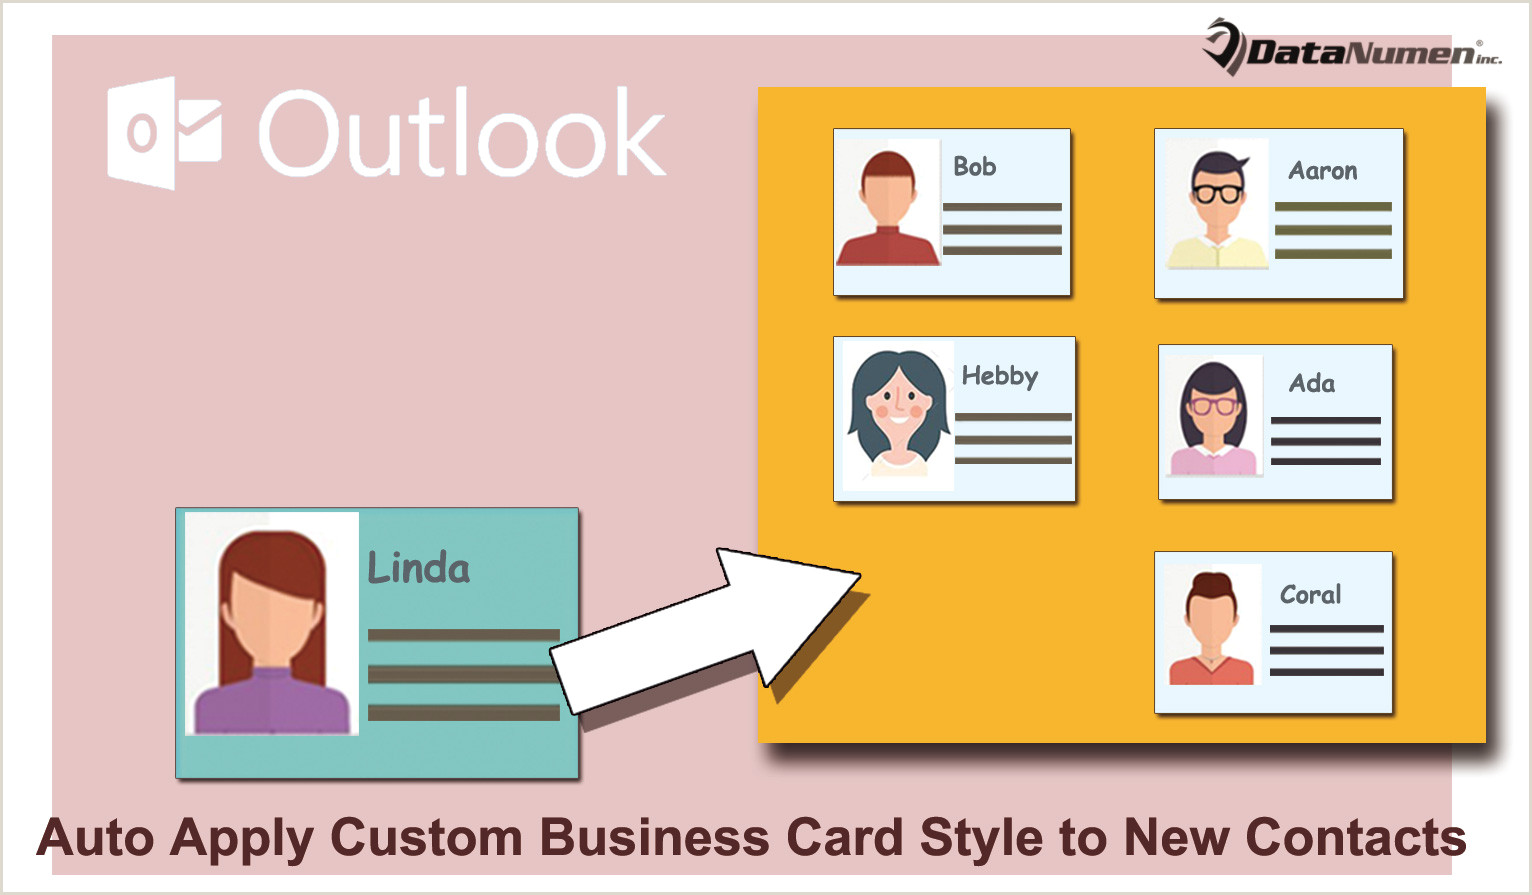 Business Card Setup 2 Ways To Auto Apply A Custom Business Card Style To New